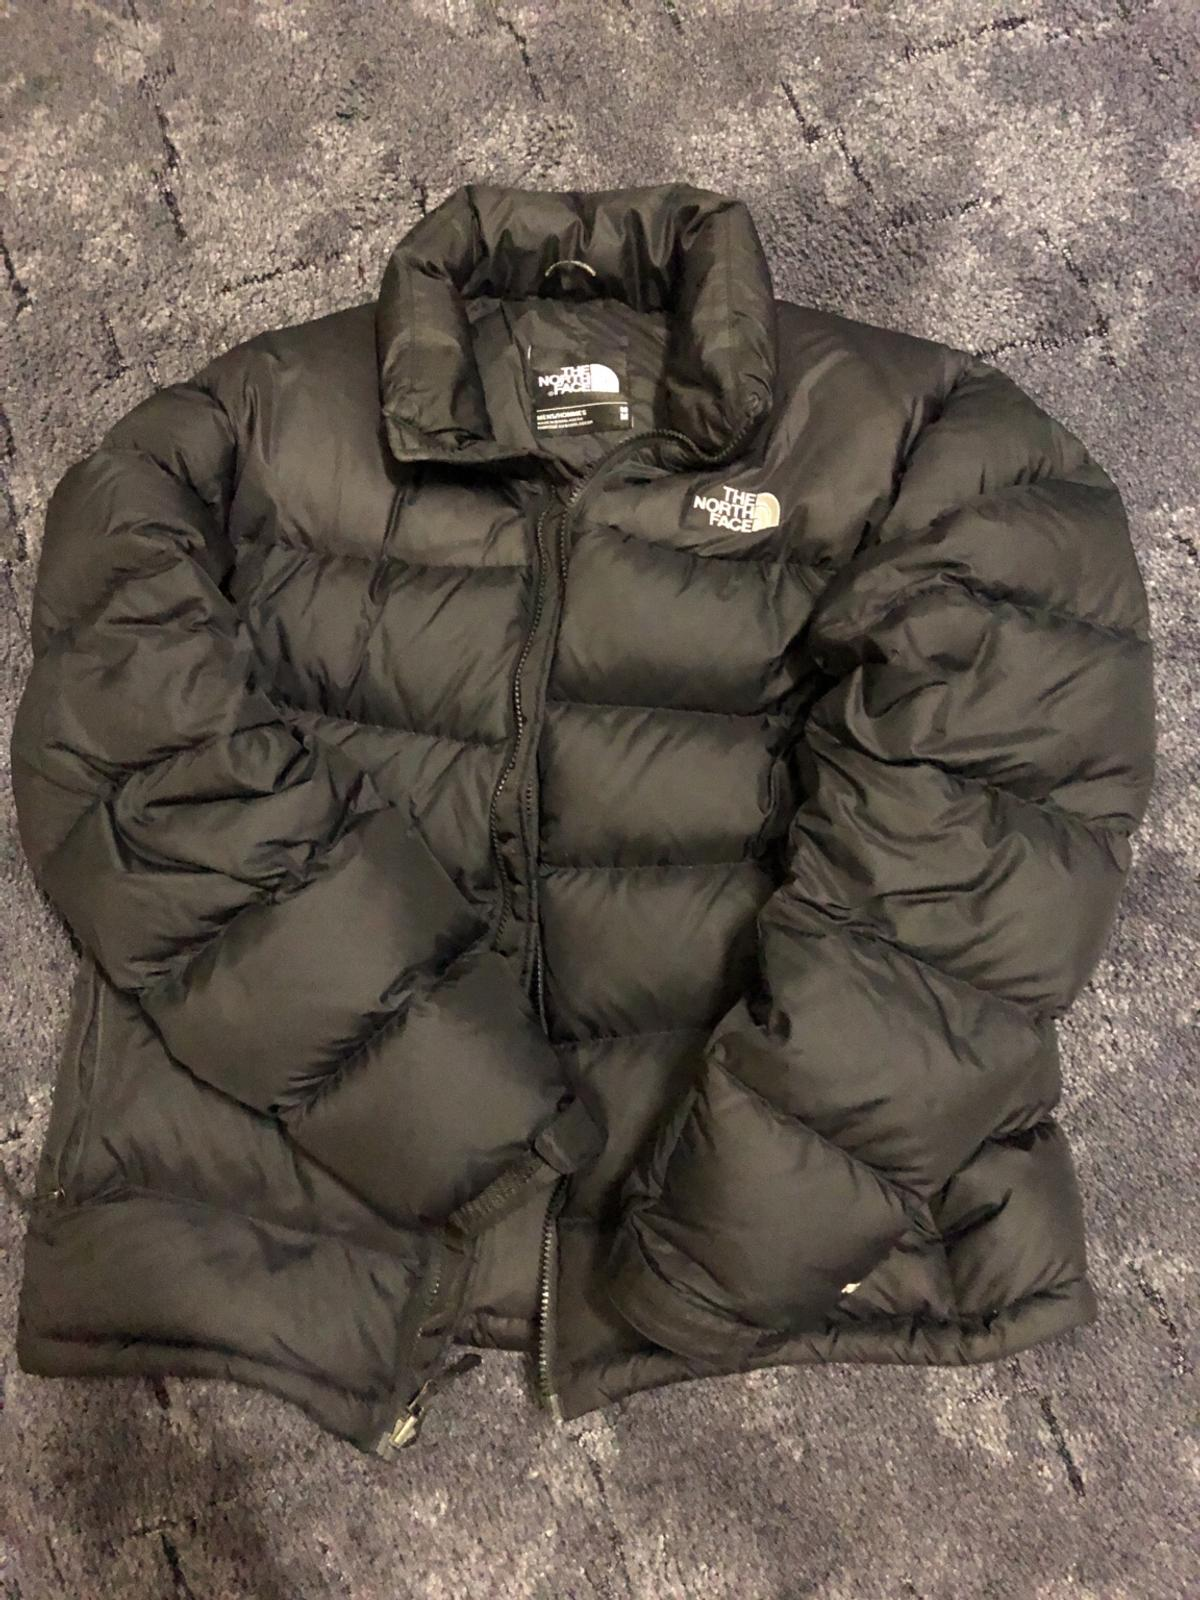 The The North North Face Herren Jacke Face Jacke hrCtQdxBs